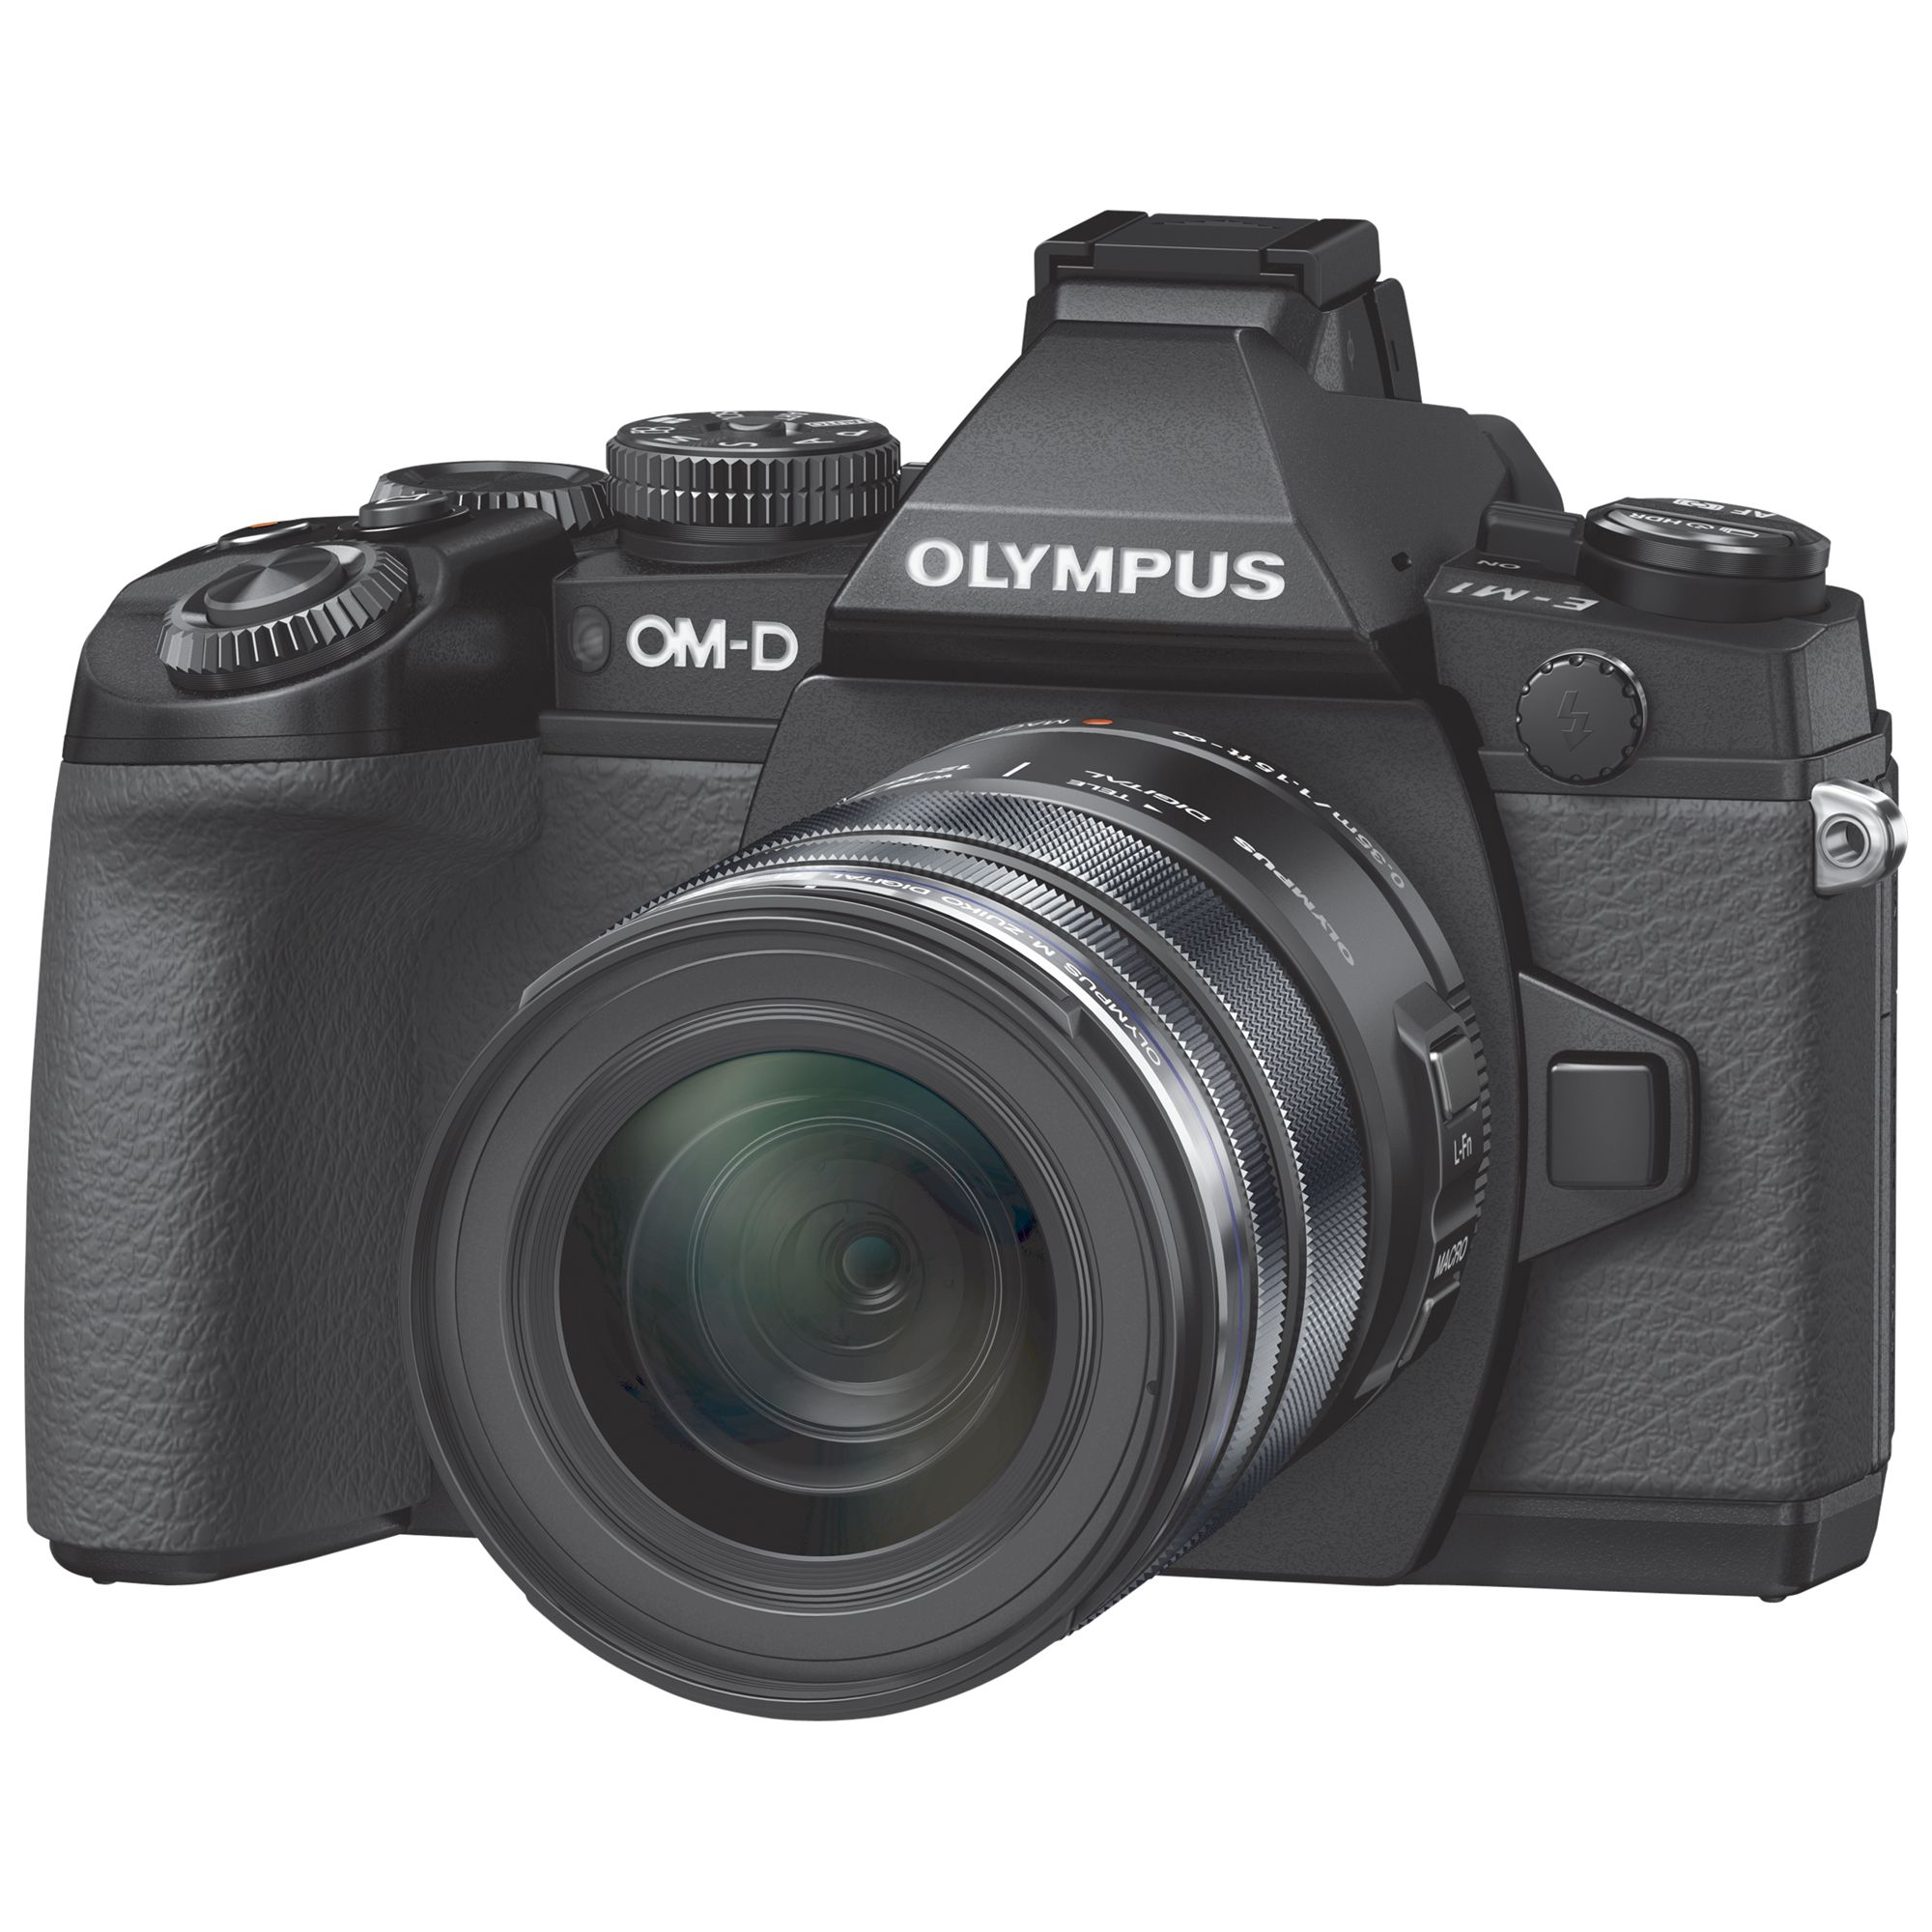 Olympus Olympus OM-D E-M1 Compact System Camera with 12-50mm Lens, HD 1080p, 16.3MP, Wi-Fi, EVF, 3 LCD Screen